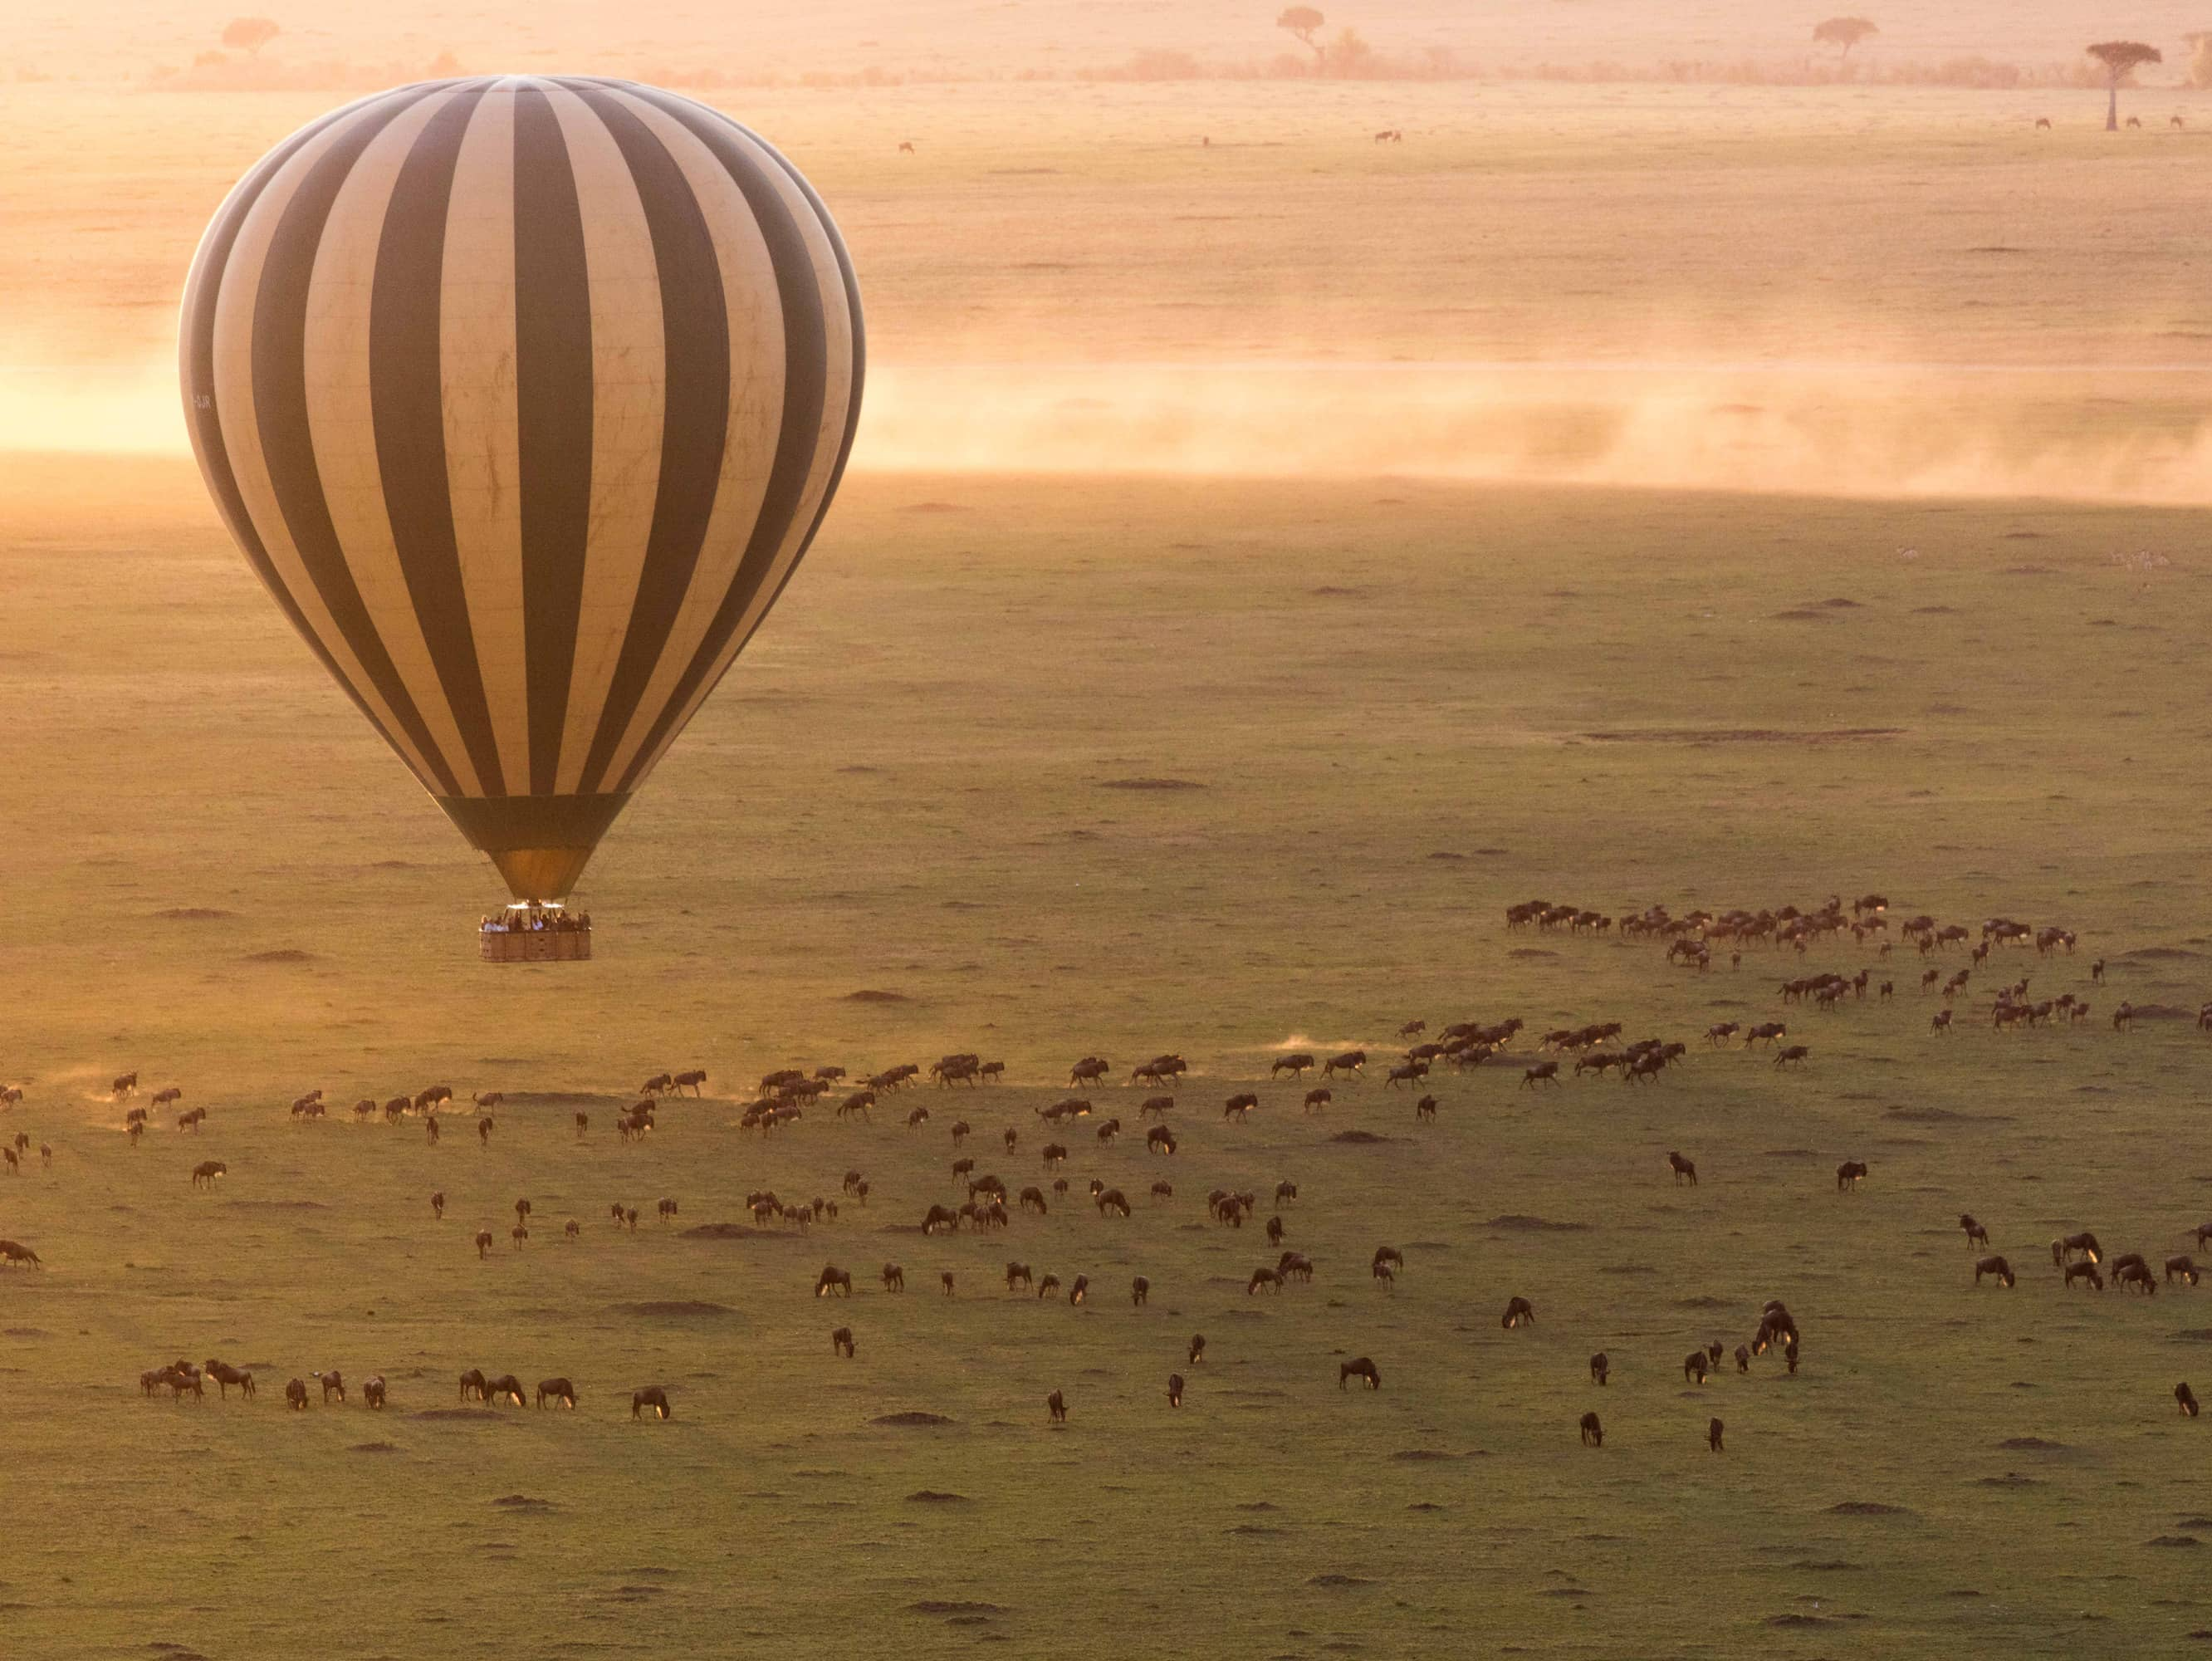 SOAR OVER THE SERENGETI IN A HOT-AIR BALLOON